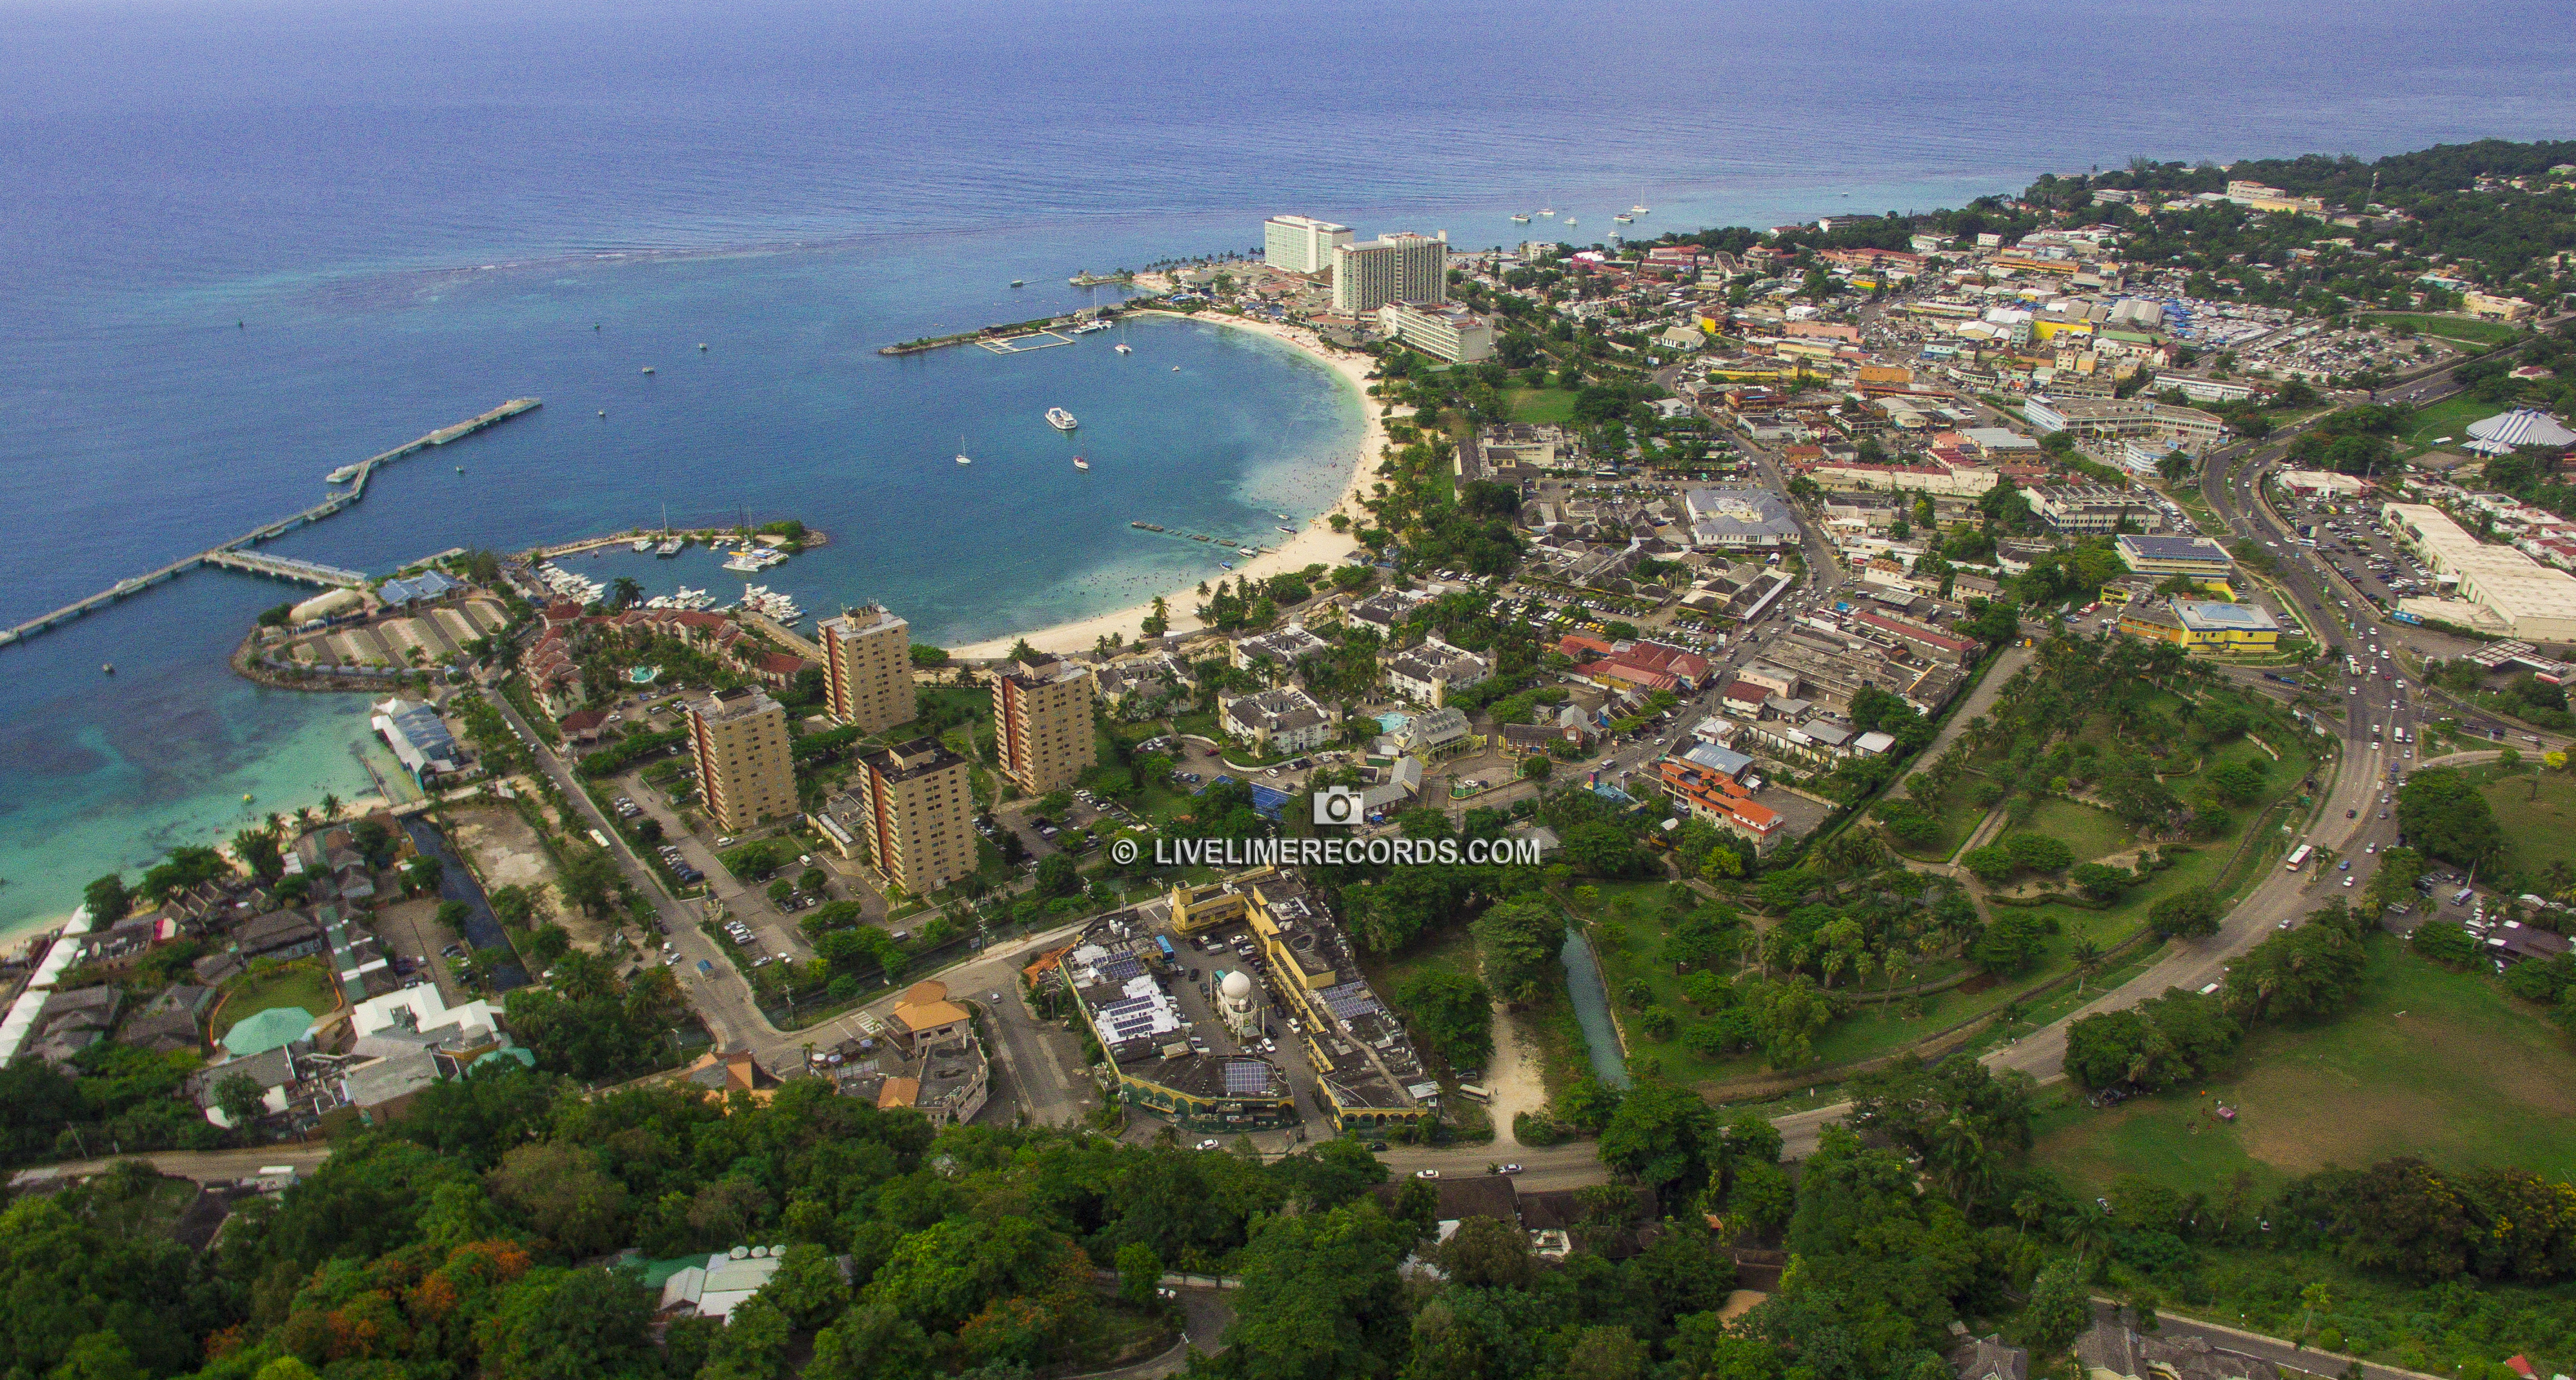 aerial pic of ocho rios jamaica - by livelimerecords